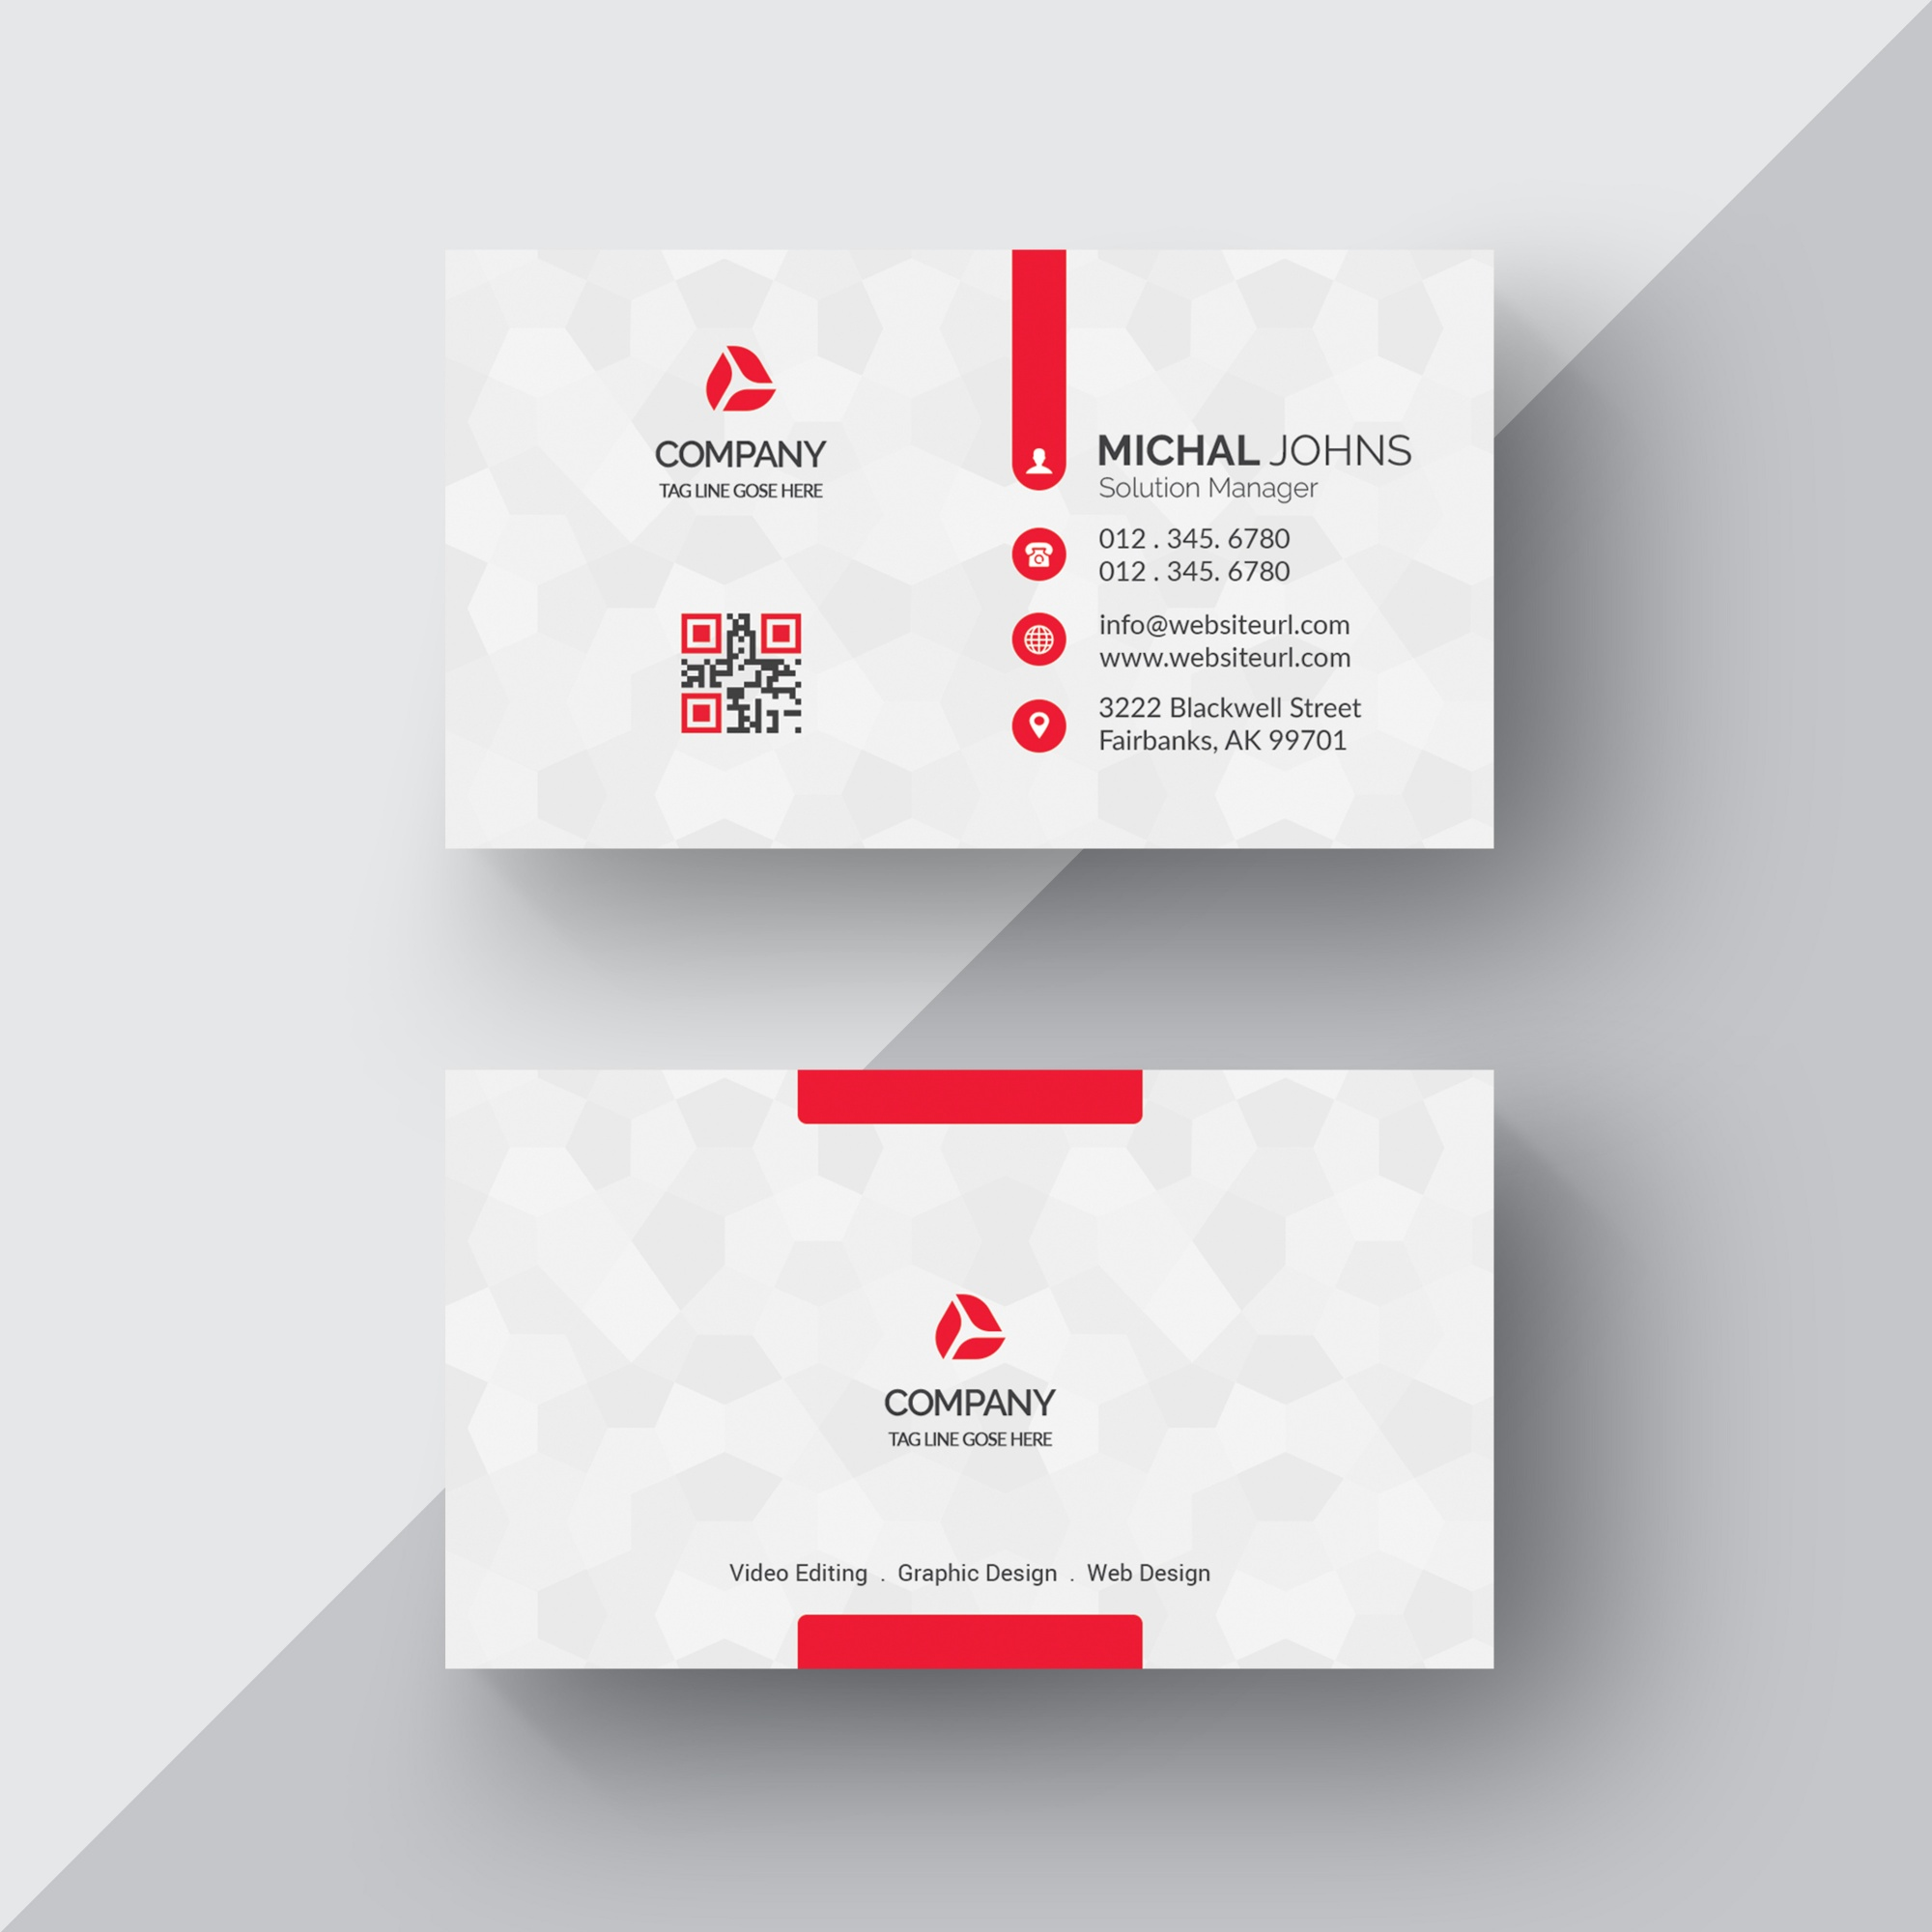 Free business card templates for photoshop business card website free business card templates for photoshop business card website printable templates business card website printable templates wajeb Images